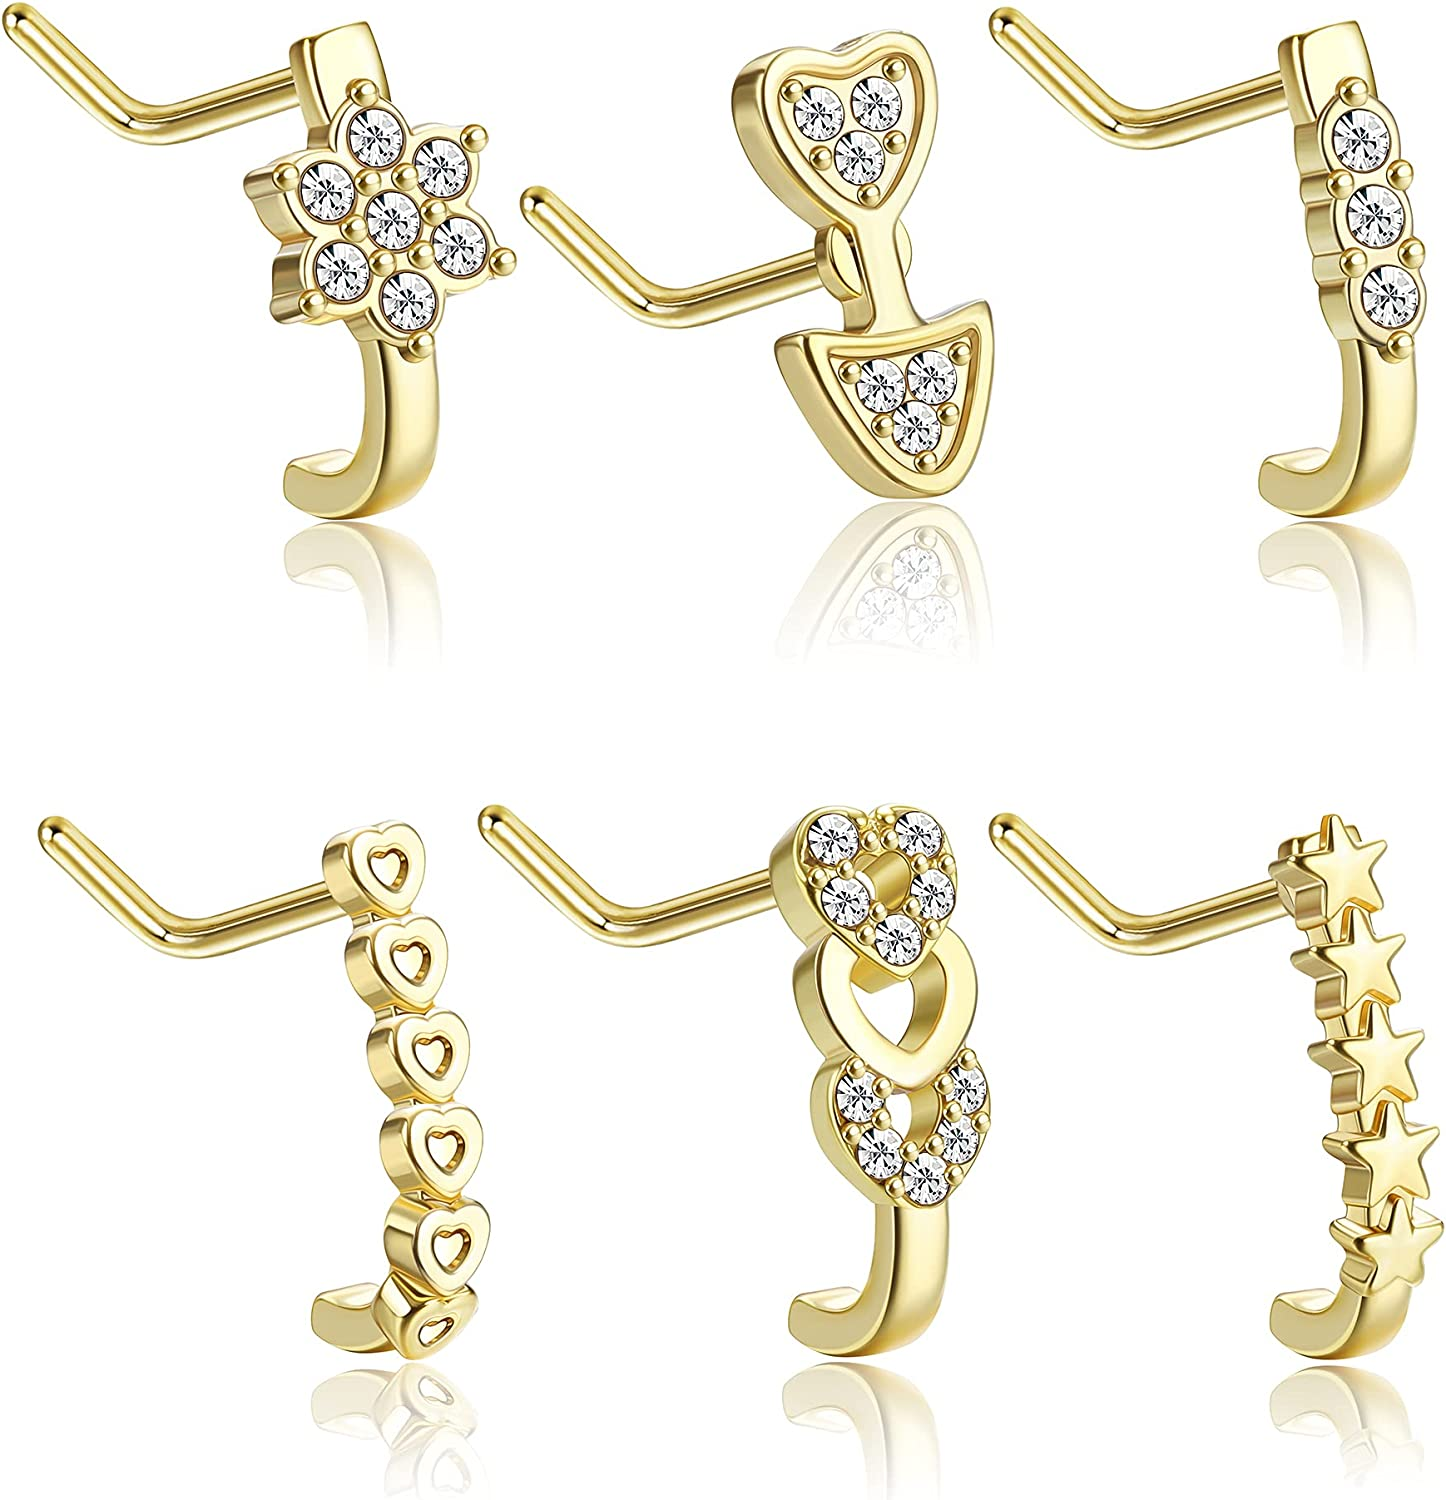 UBGICIG 18G Nose Stud Nose Rings L Shaped for Women Stainless Steel Nose Studs Cubic Zirconia Star Flower Nose Piercing Jewelry Set